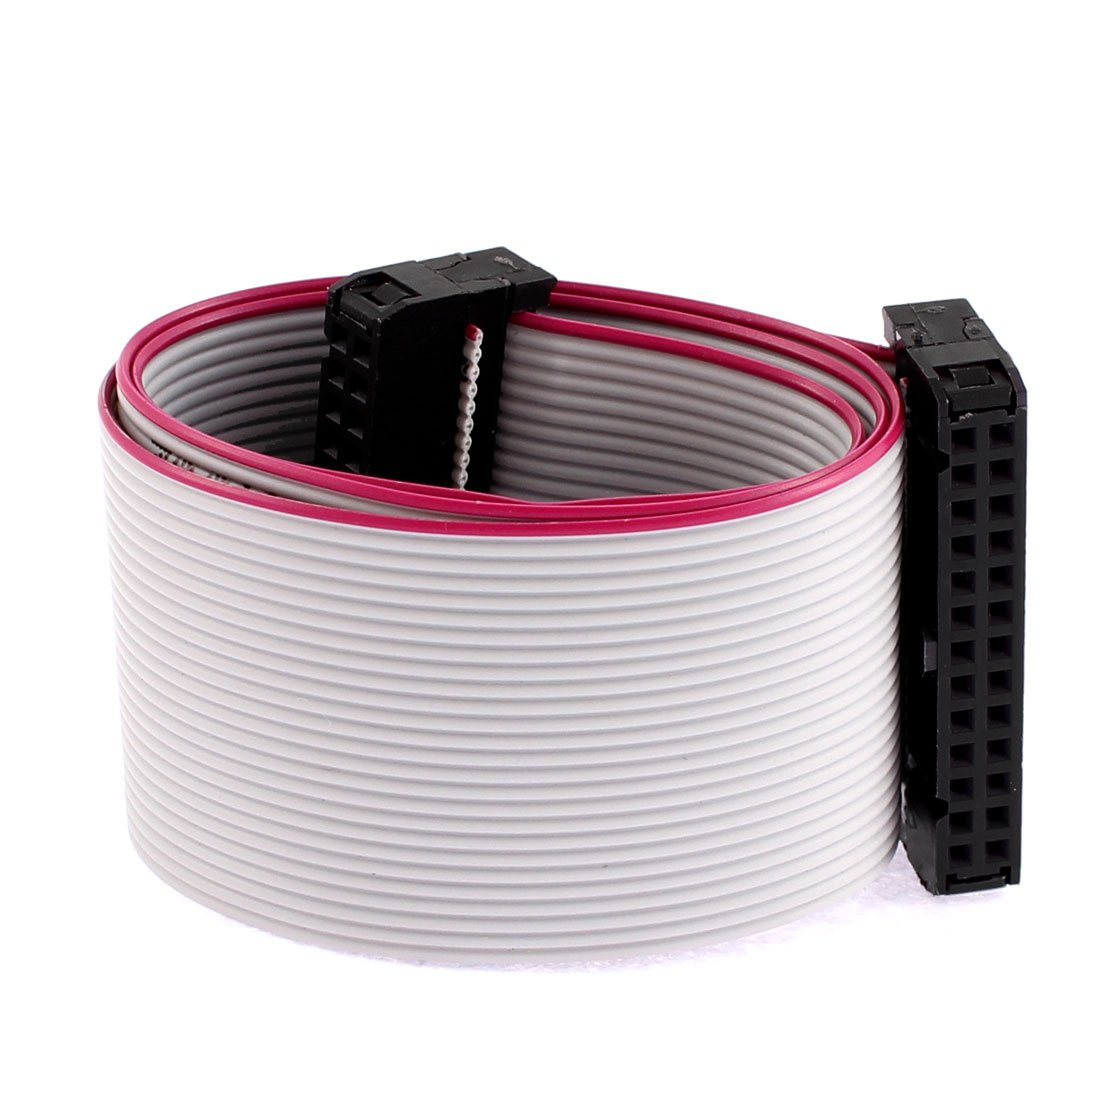 Uxcell IDC Flat Ribbon Cable, 26 Pin, 26 Wire, 2.54 mm Pitch, 40 cm Length